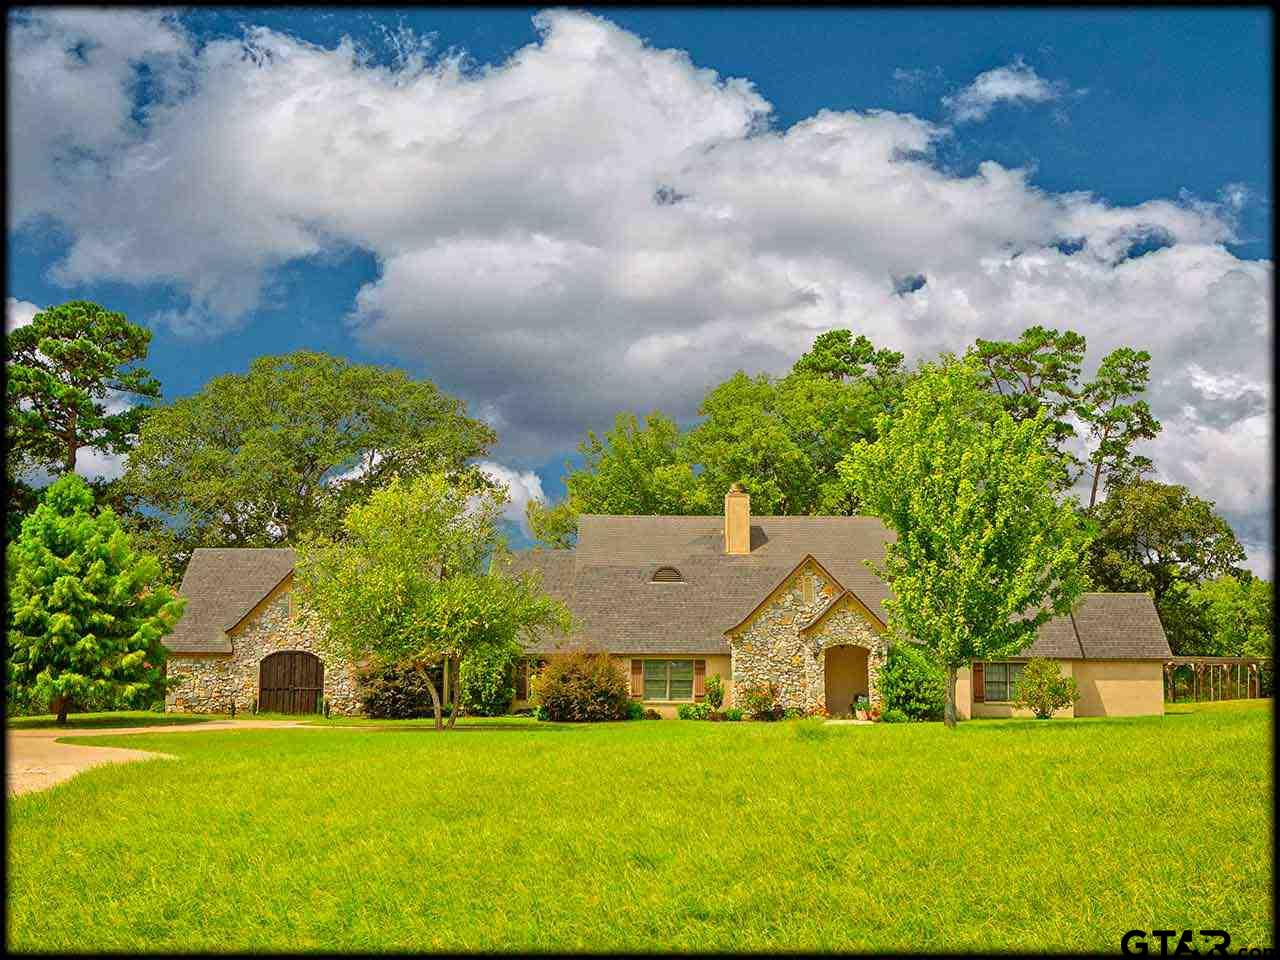 Gated 45 Acre Gentleman's Ranch with 40'x60' Shop. Approximately 25 minutes South of Tyler, is an updated 4 bedroom, 4 bath custom home on acreage that is 60/40 coastal pasture & heavy woods. Game & wildlife abound with live creeks & wooded cover. For the Gentleman, the impressive 40'x60' insulated metal shop has 3 overhead doors, 6 windows, RV storage, 200 amp electrical. Stately & inviting home has rear entry 2 car garage with shop area, sun room, formal dining & mud room with fabulous storage. Expansive & open living space has stone fireplace, breakfast area, professional kitchen with Wolf range. Amazing nature views out the kitchen windows! Comfortable master bedroom with walk-in closet, master bath has large shower, corner tub, dual sinks and lovely lighting. 2 guest rooms, 2 guest baths on main floor. Upstairs is private guest suite with living, bedroom & adjoining private bath. Wrought iron fencing & gate with keypad, 1,000 feet crushed concrete driveway. Numerous updates!